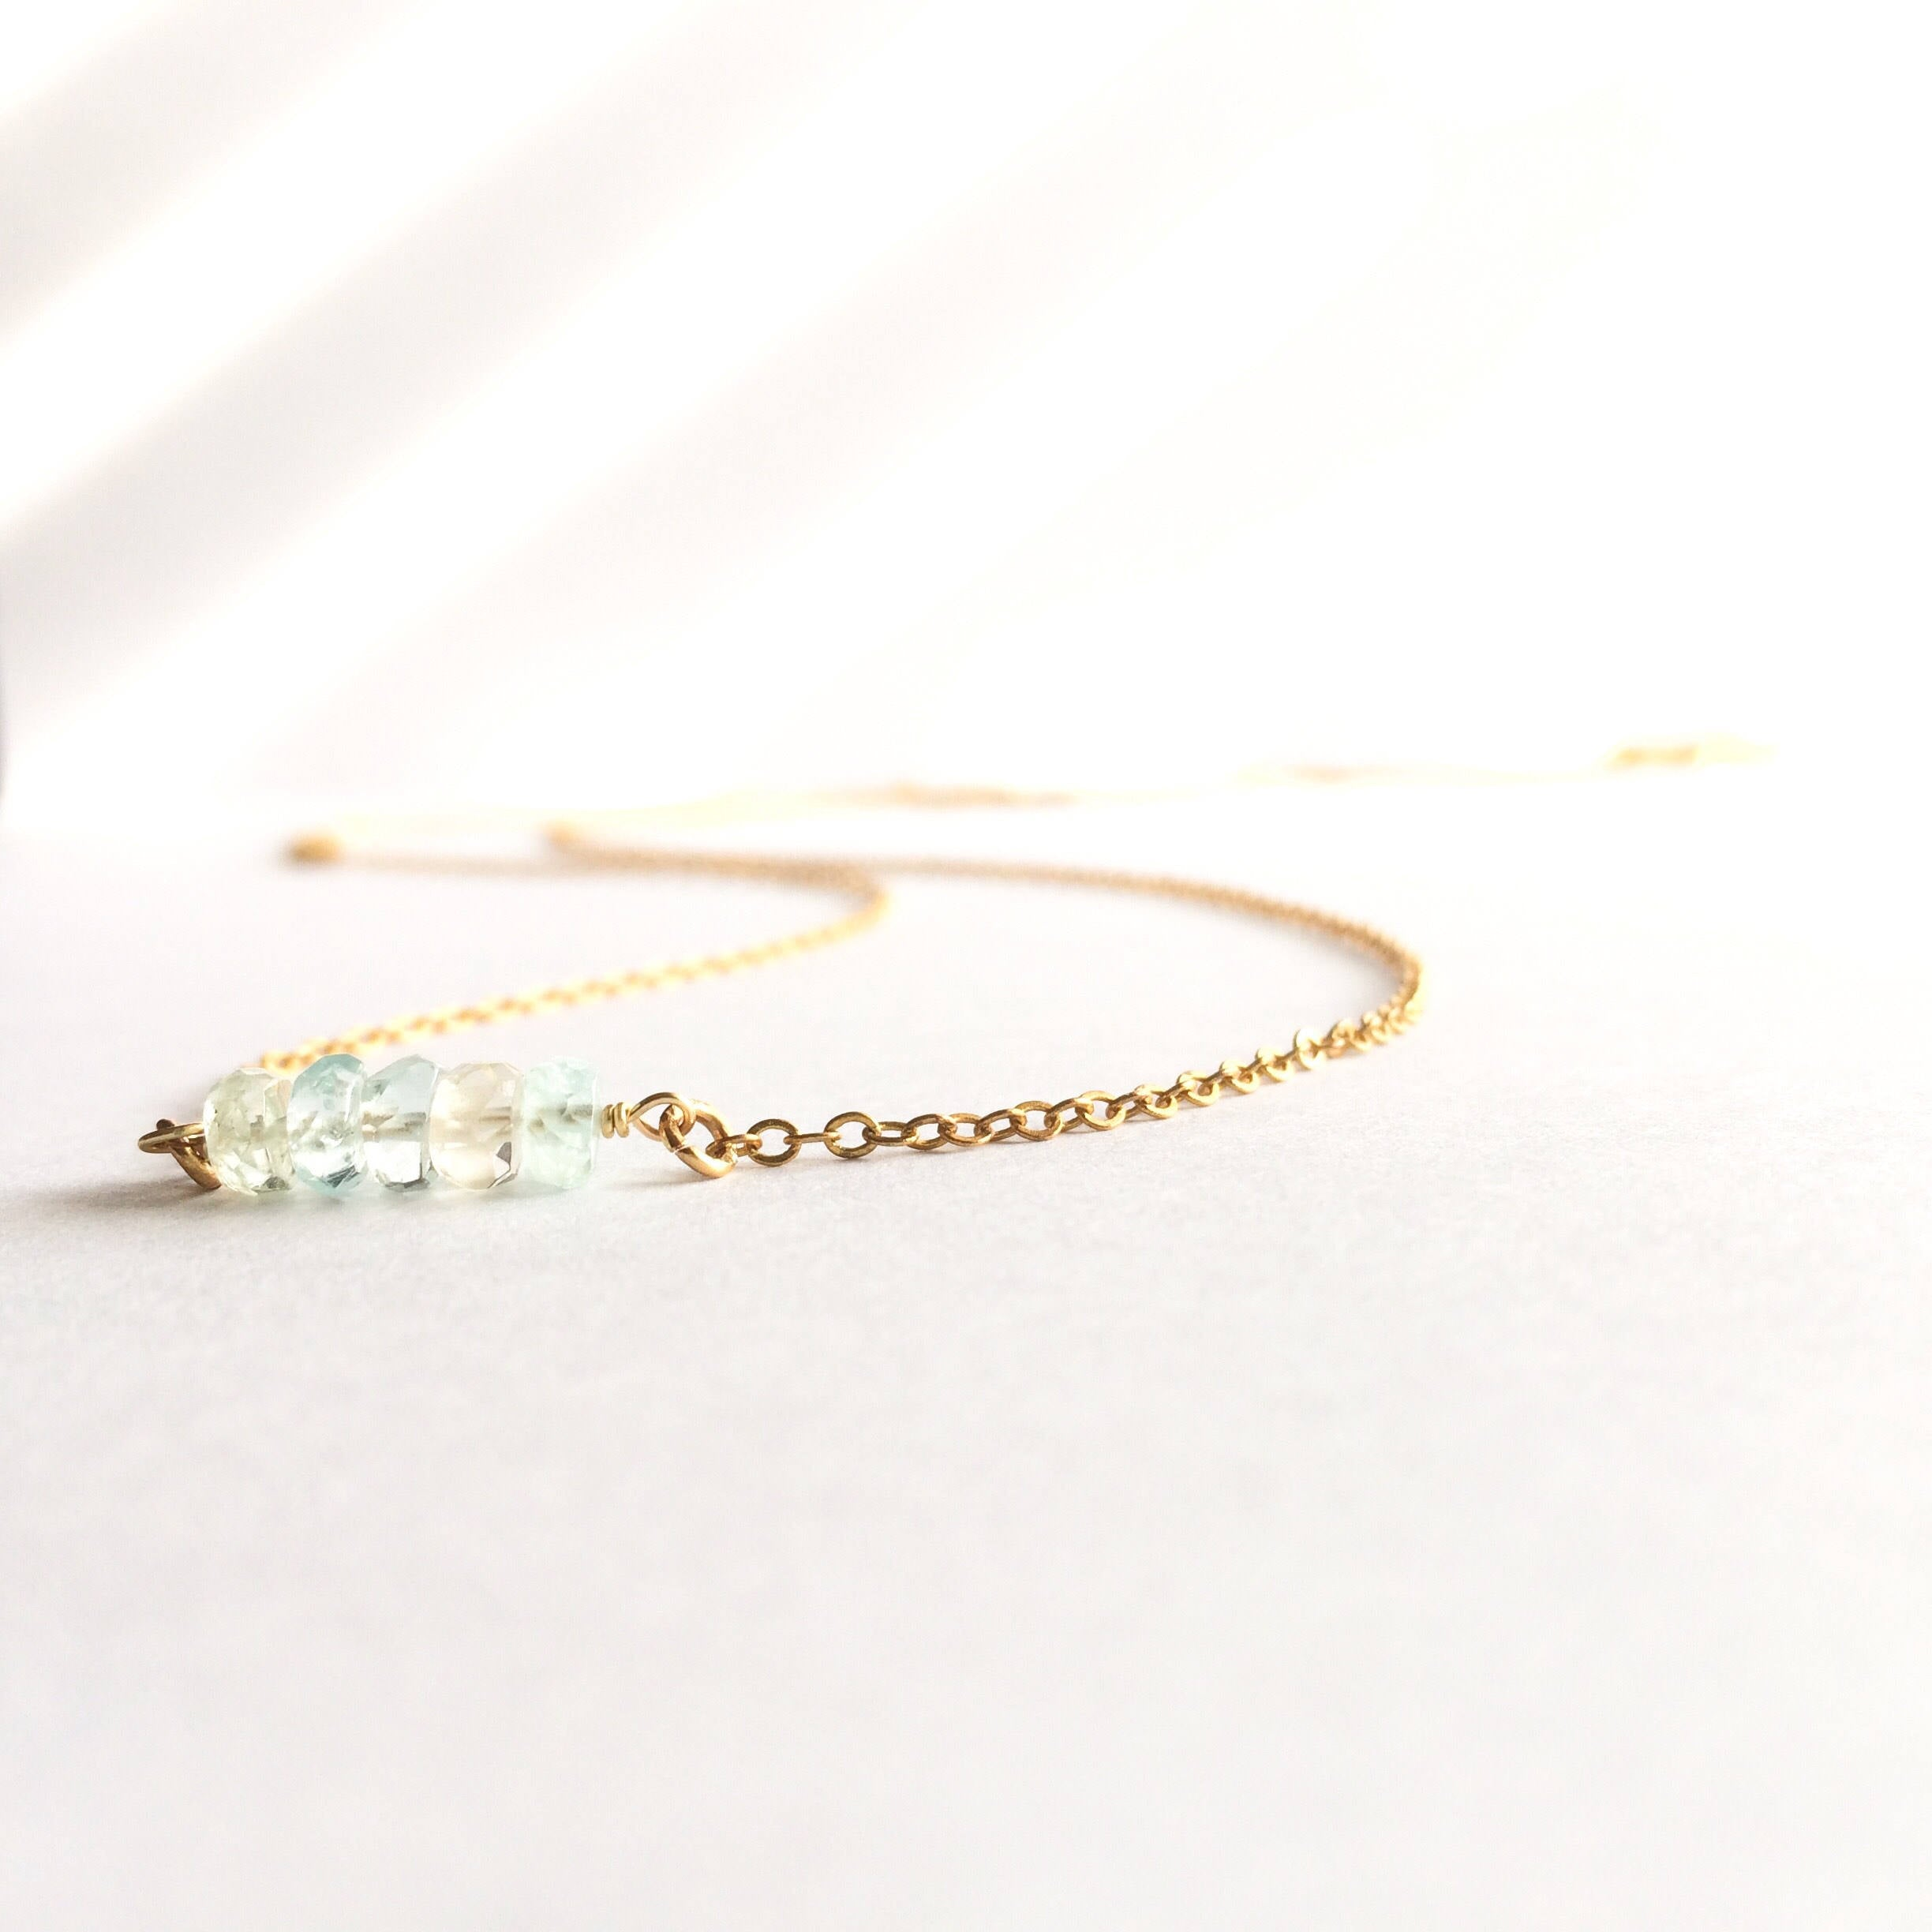 Delicate Tiny Ombre Aquamarine Gemstone Bar Necklace | IB Jewelry